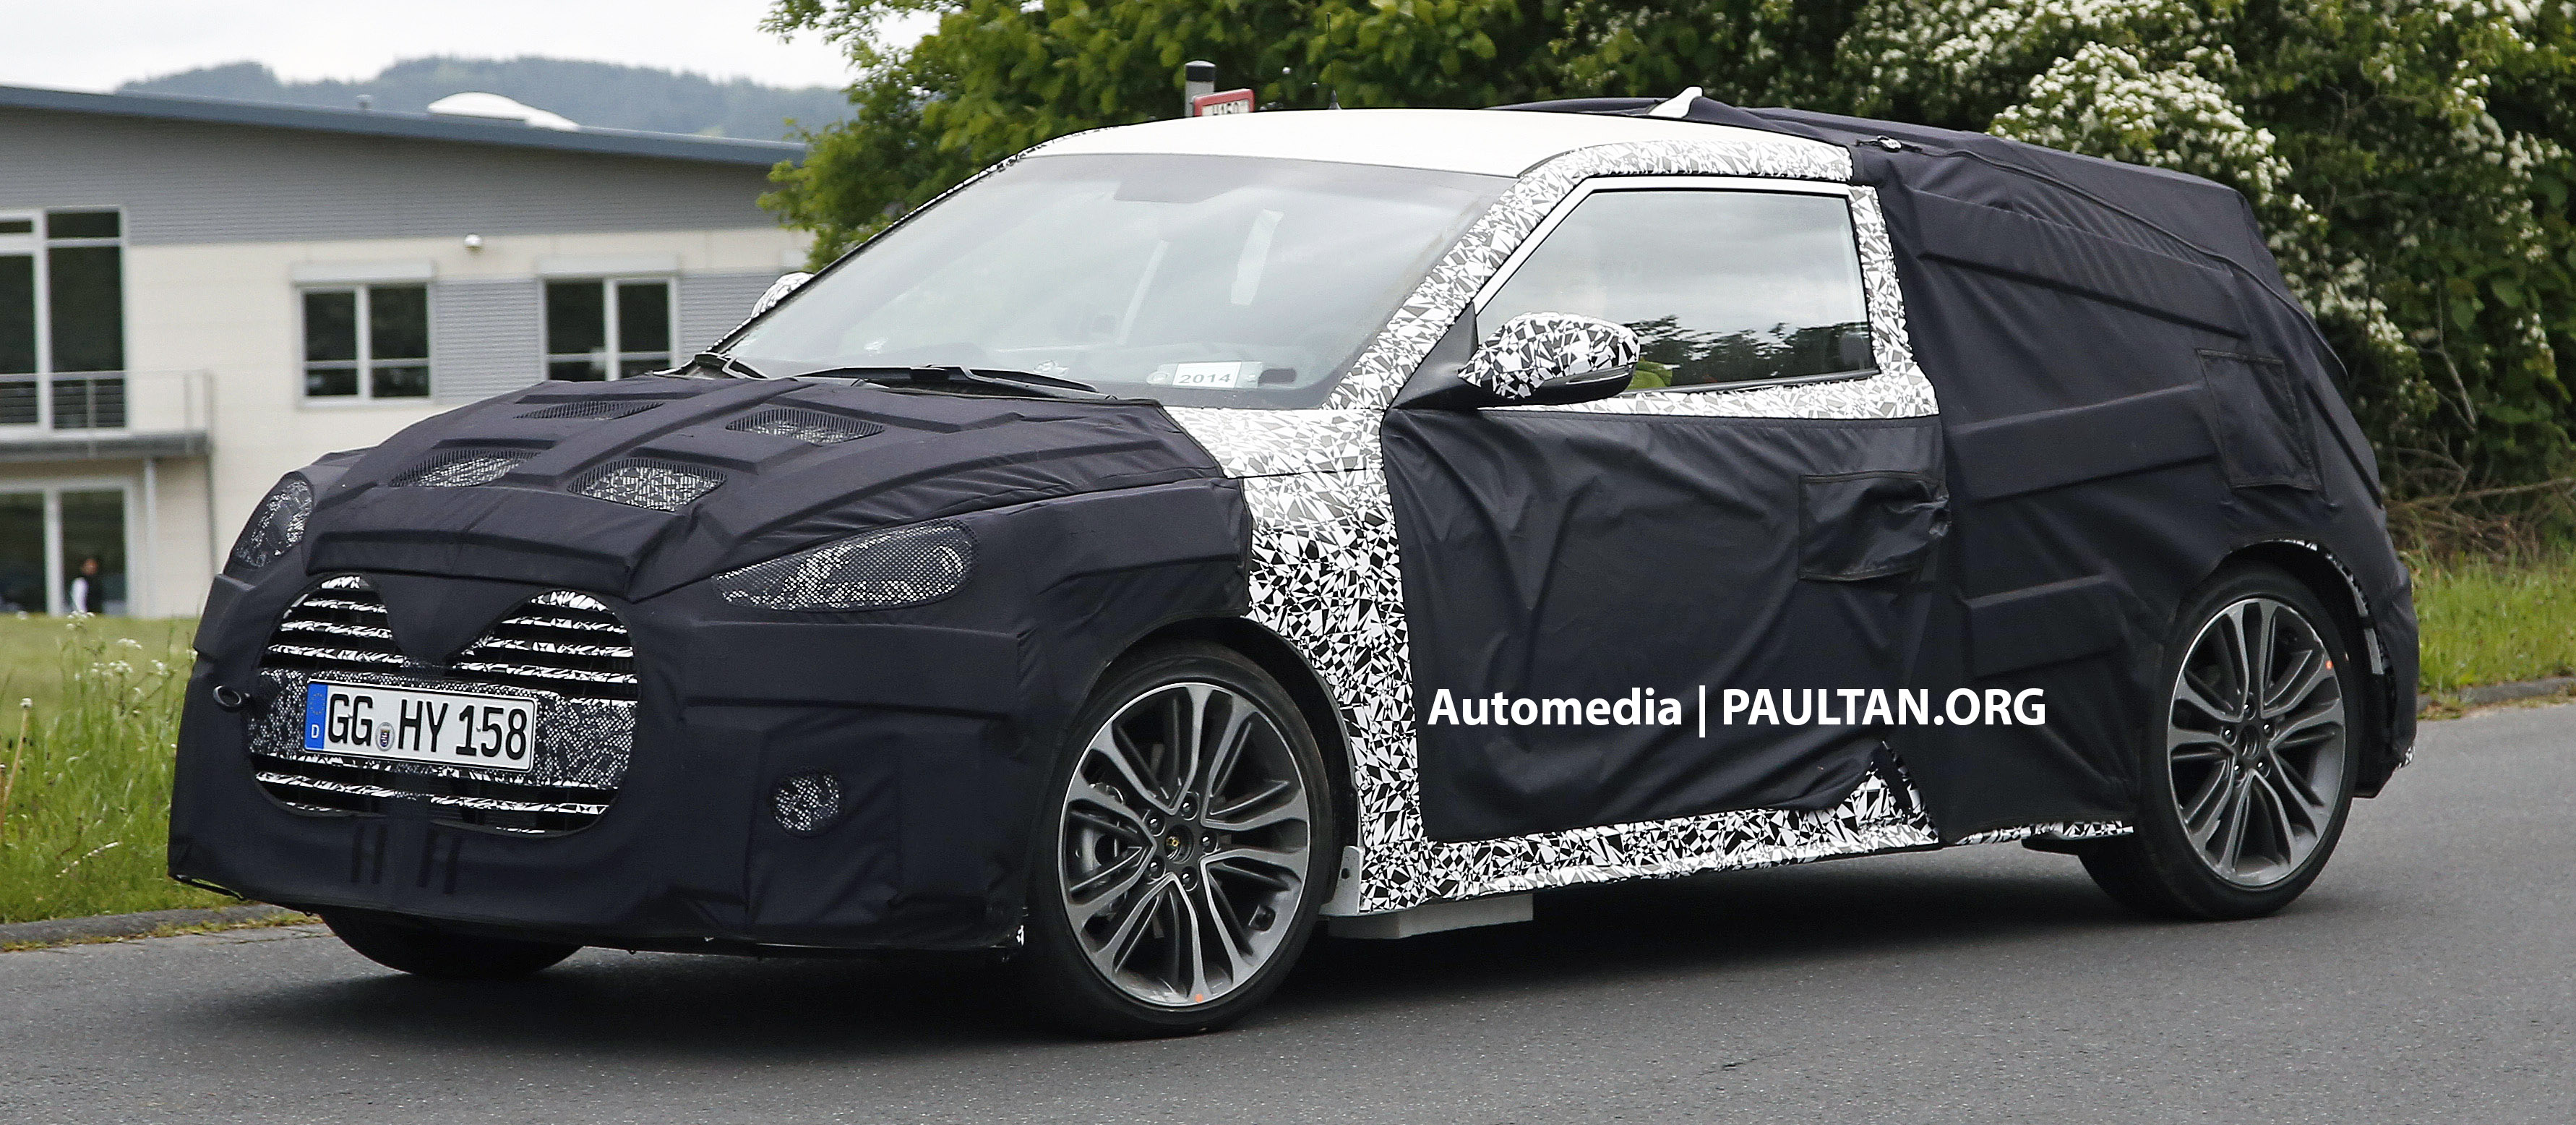 SPIED: Hyundai Veloster Turbo facelift in Germany Image 247371